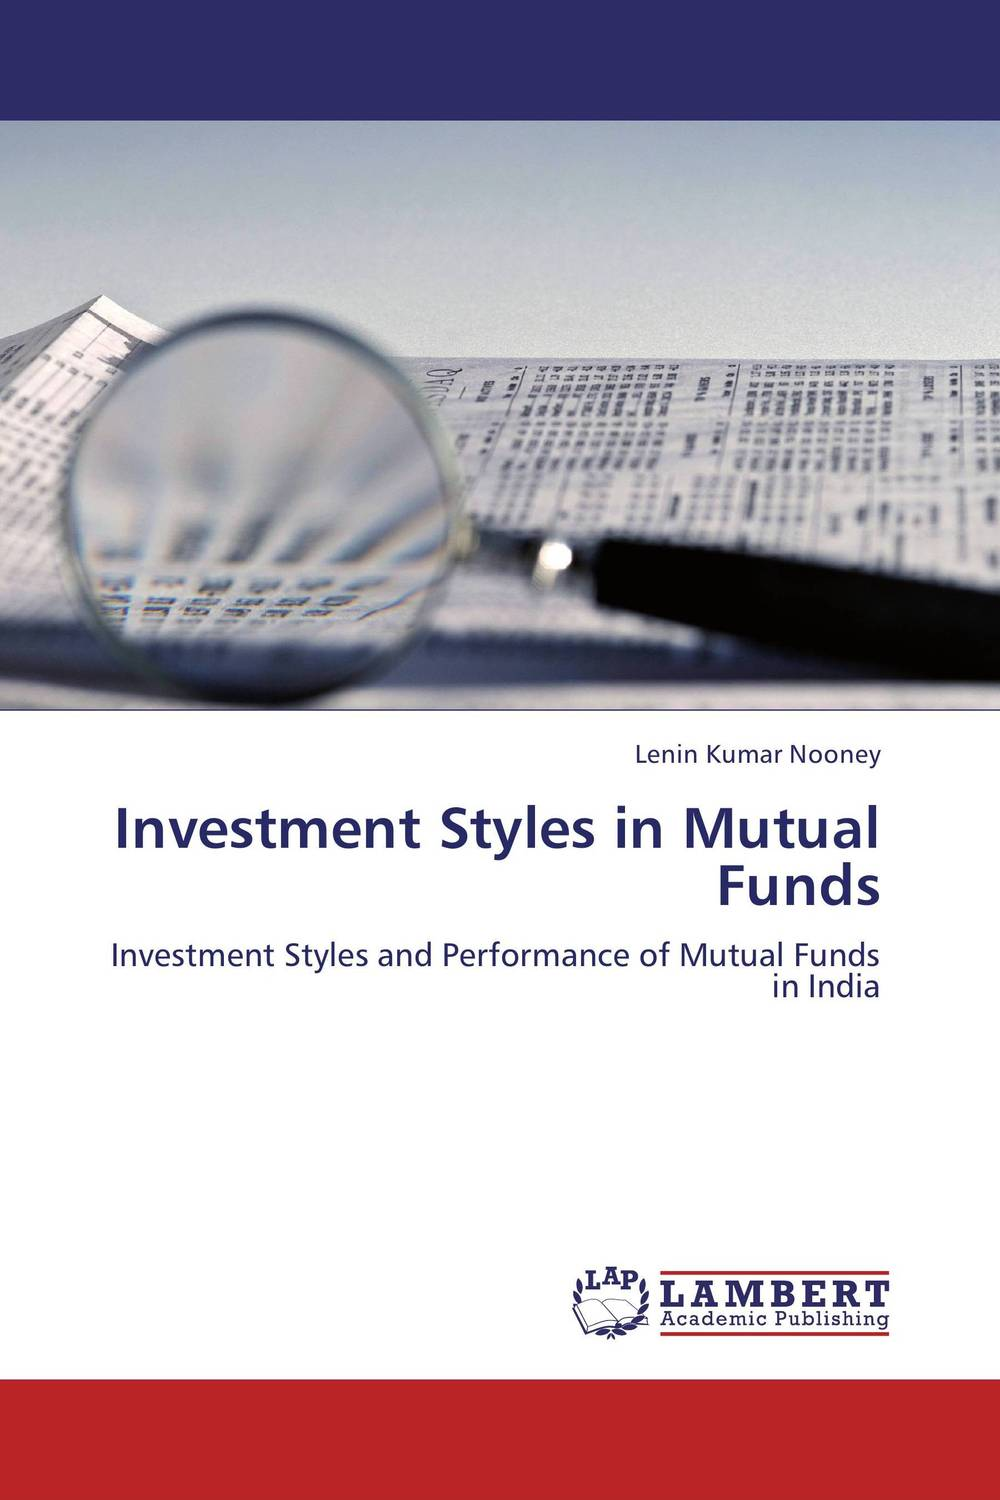 Investment Styles in Mutual Funds our mutual friend